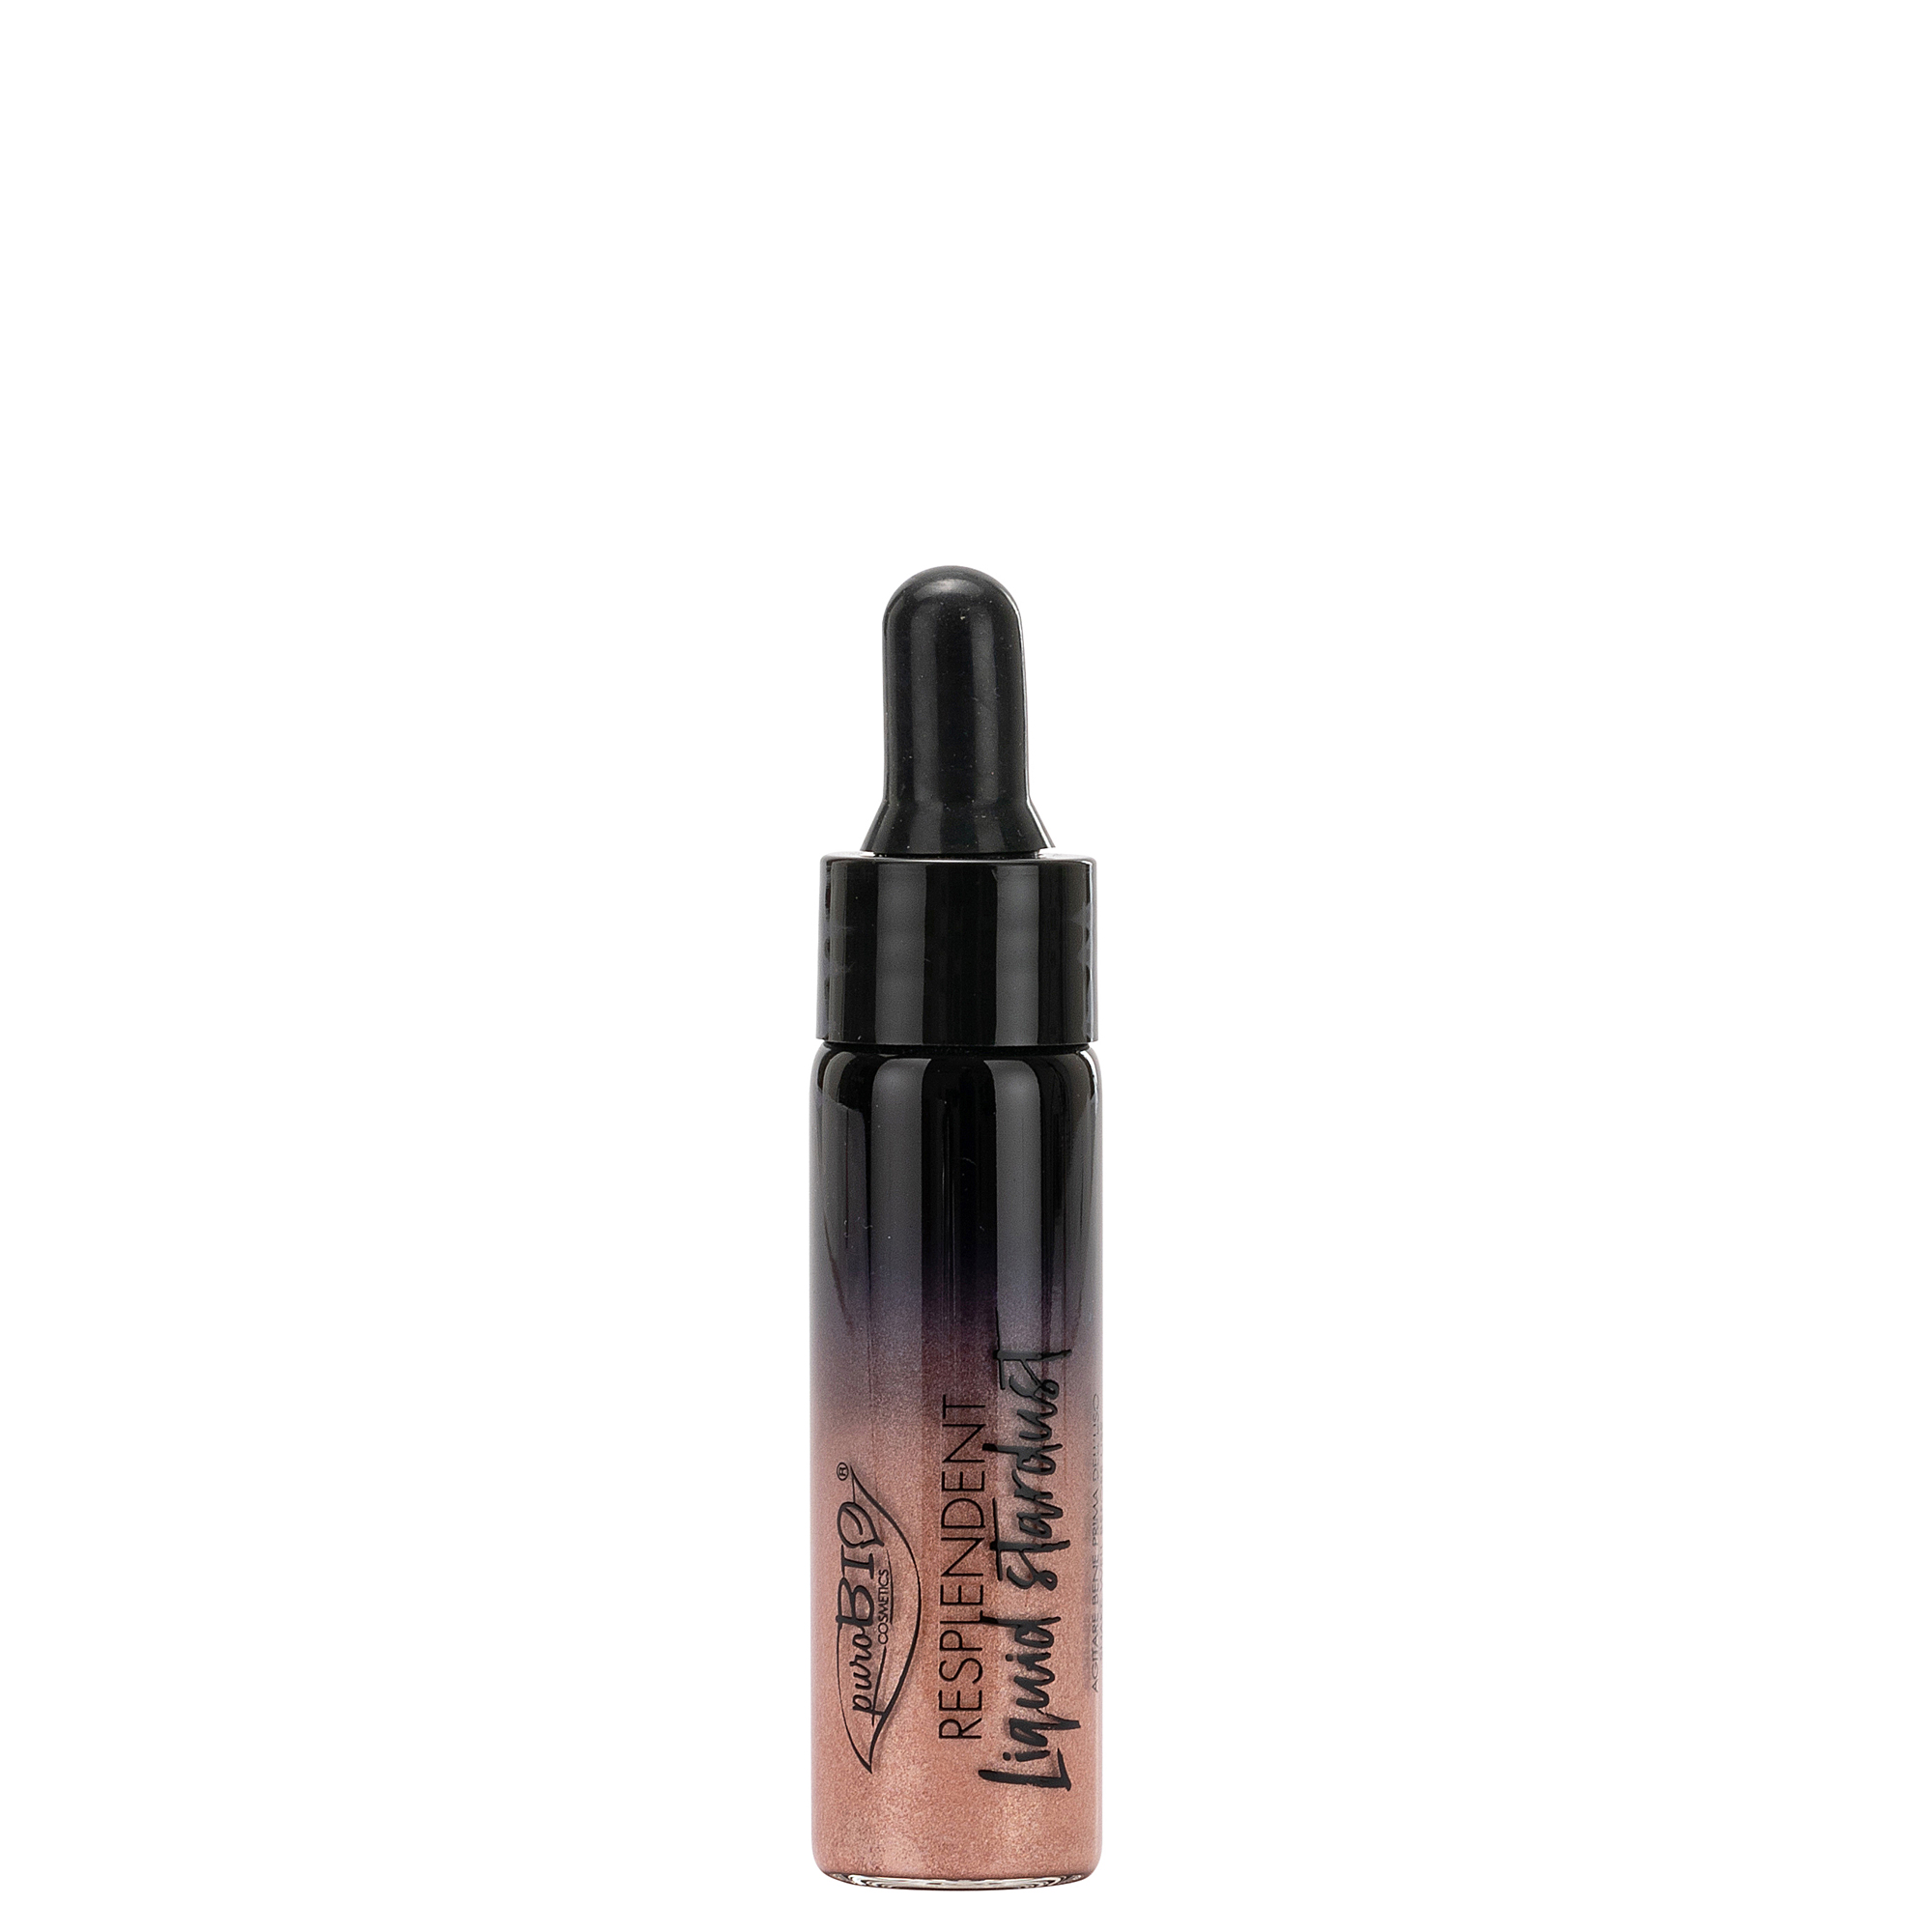 Highlighter i lengshem Resplendent Liquid Stardust ROSE GOLD 02